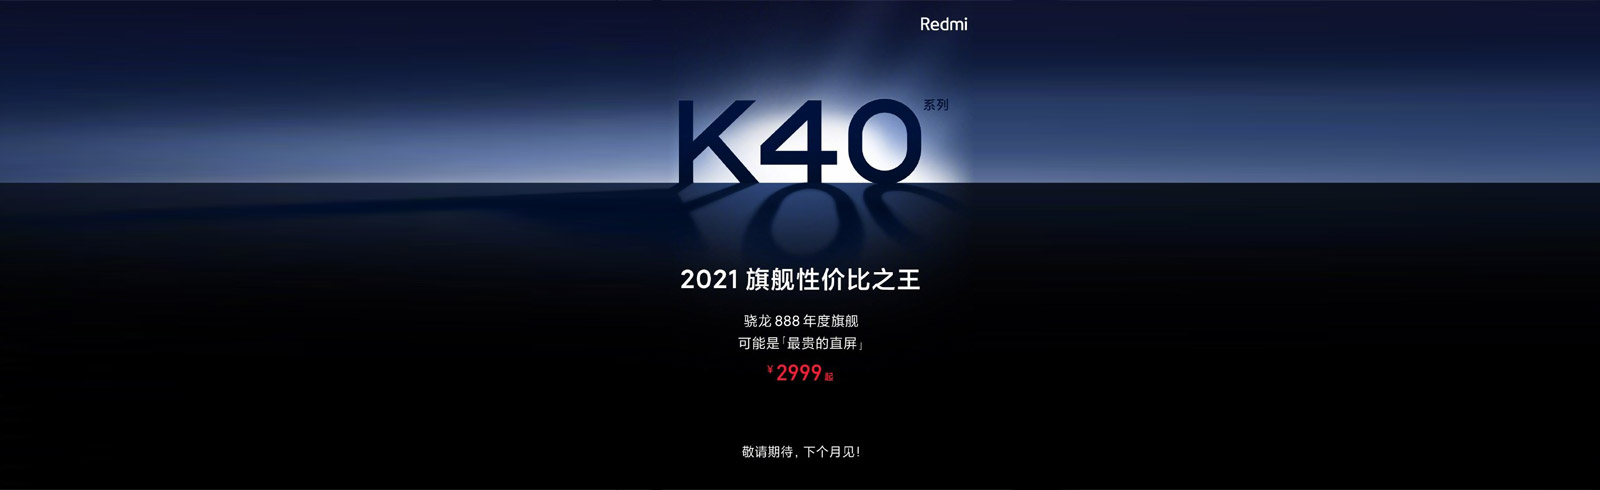 The Redmi K40 and Redmi K40 Pro will be unveiled next month